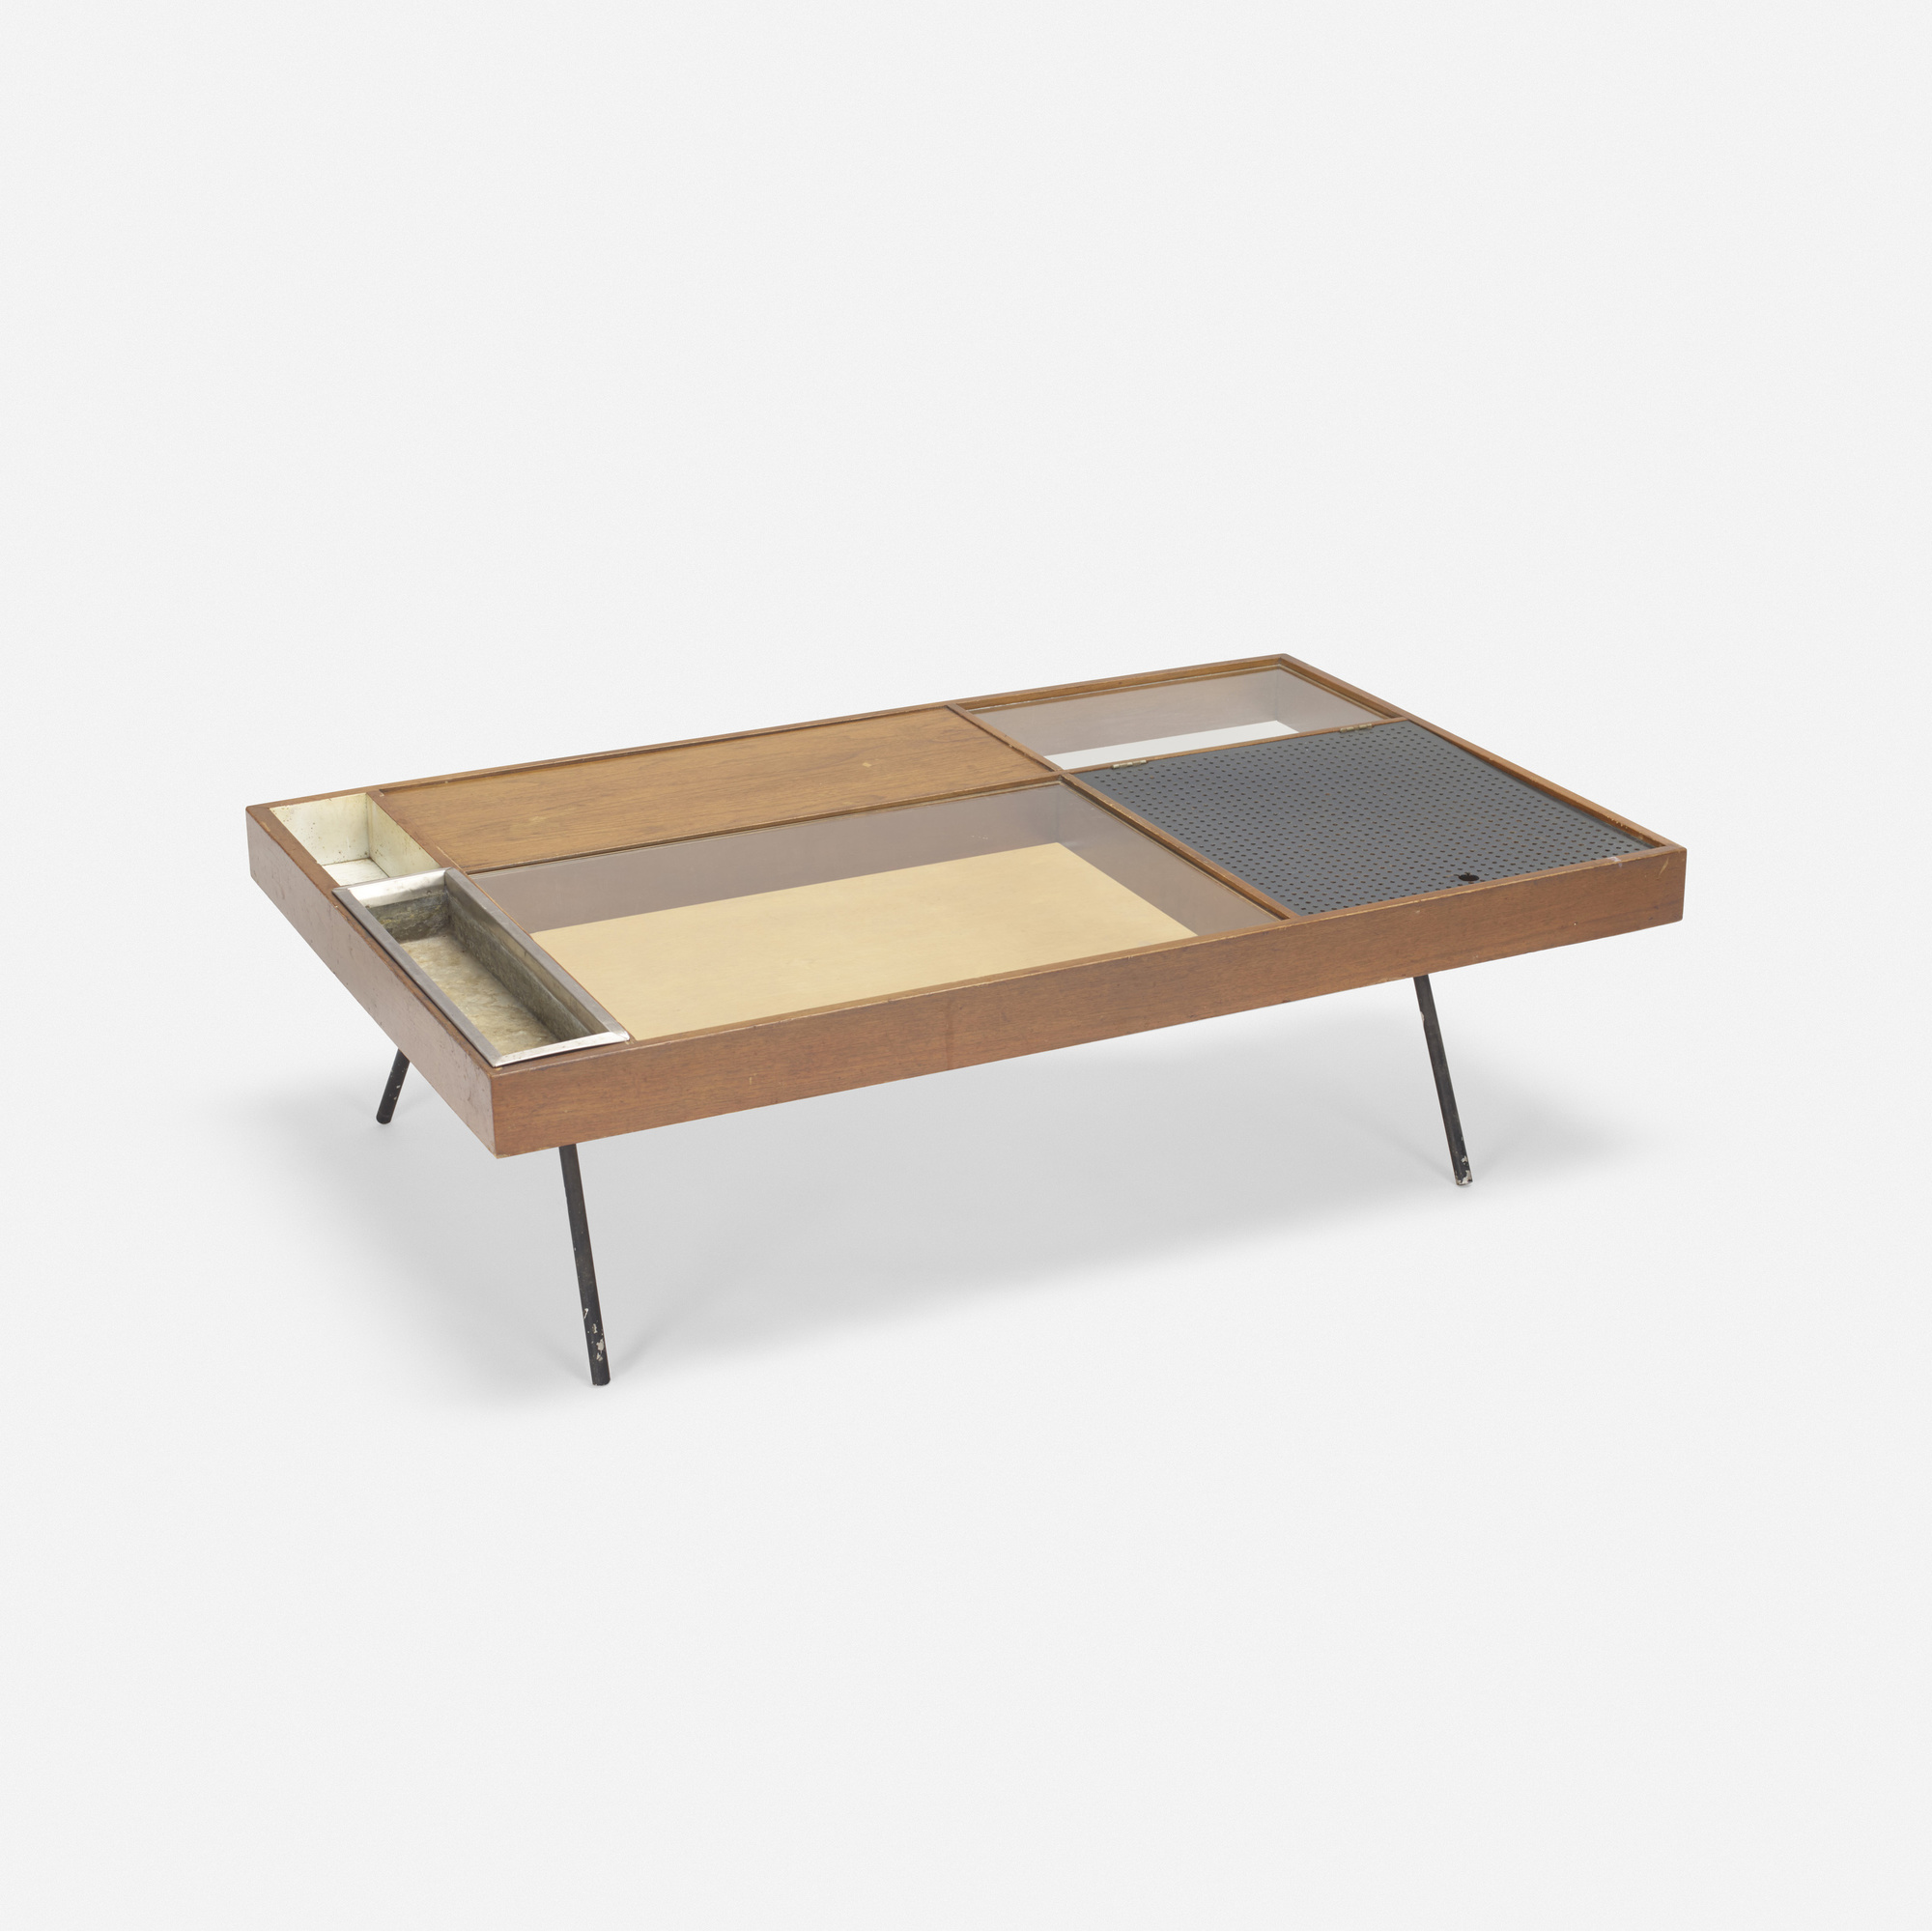 Gentil 148: Milo Baughman / Coffee Table (1 Of 3)